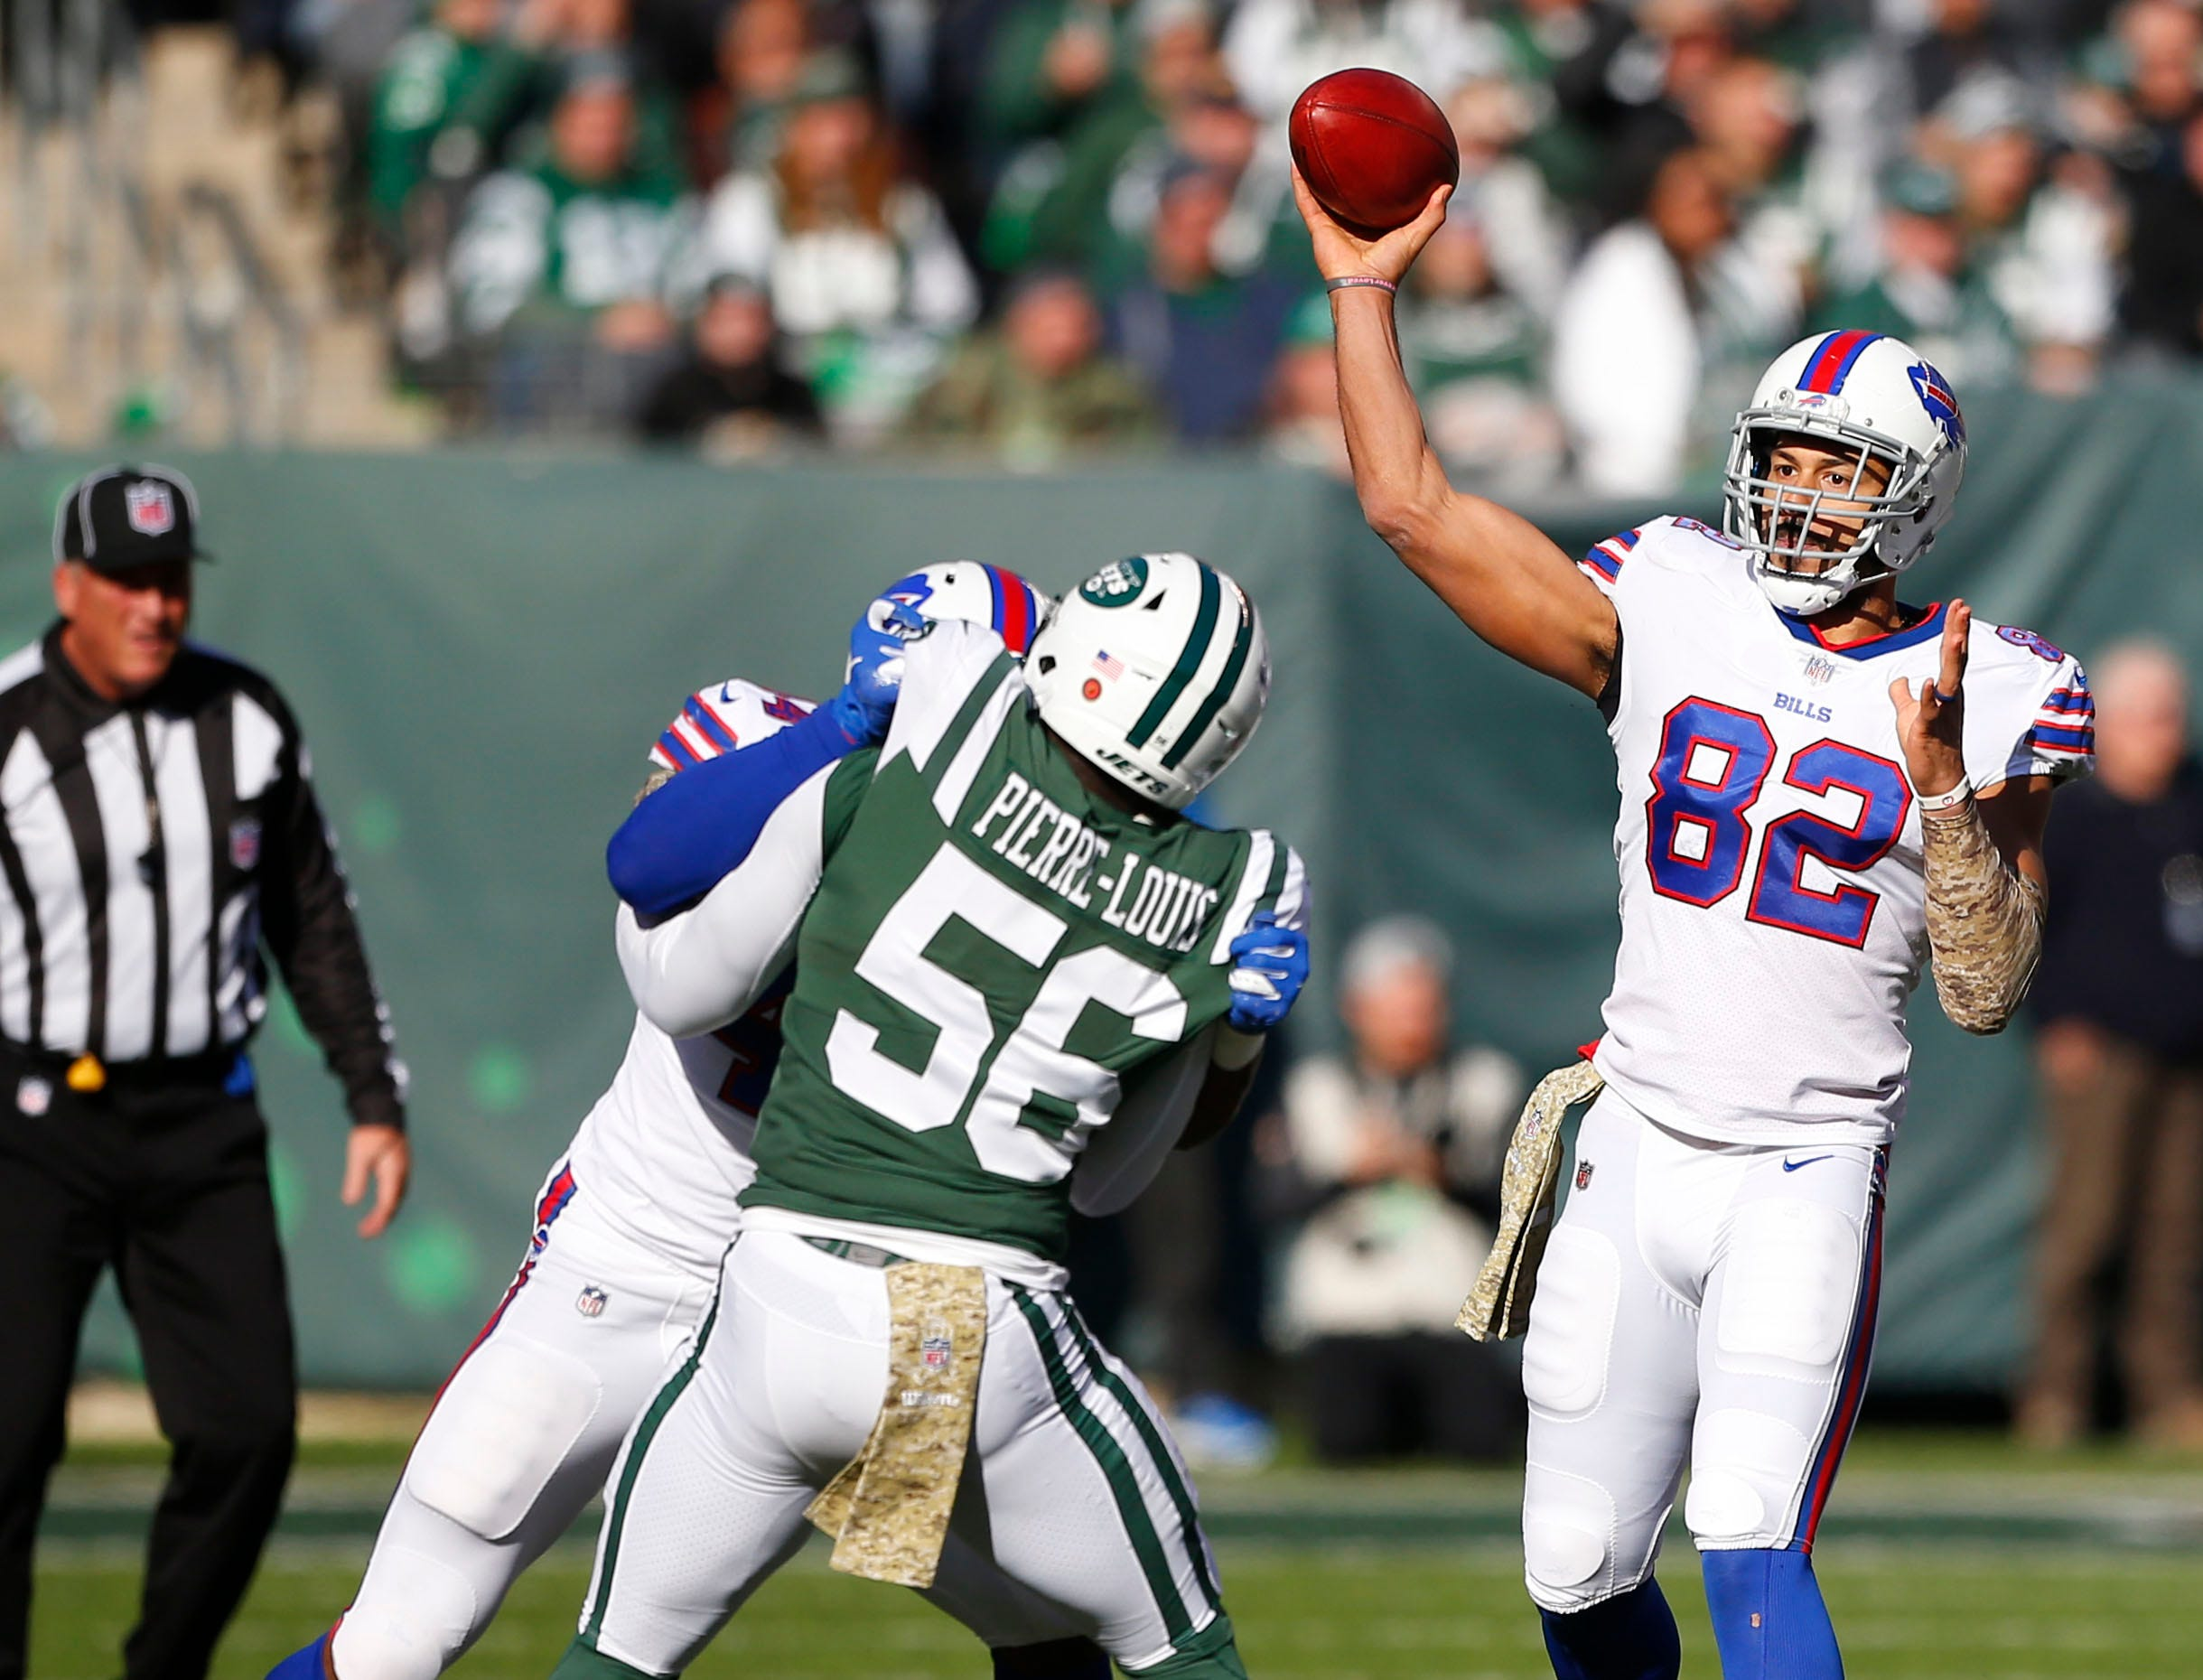 Nov 11, 2018; East Rutherford, NJ, USA;Buffalo Bills tight end Logan Thomas (82) throws a pass against the New York Jets during the first quarter at MetLife Stadium. Mandatory Credit: Noah K. Murray-USA TODAY Sports